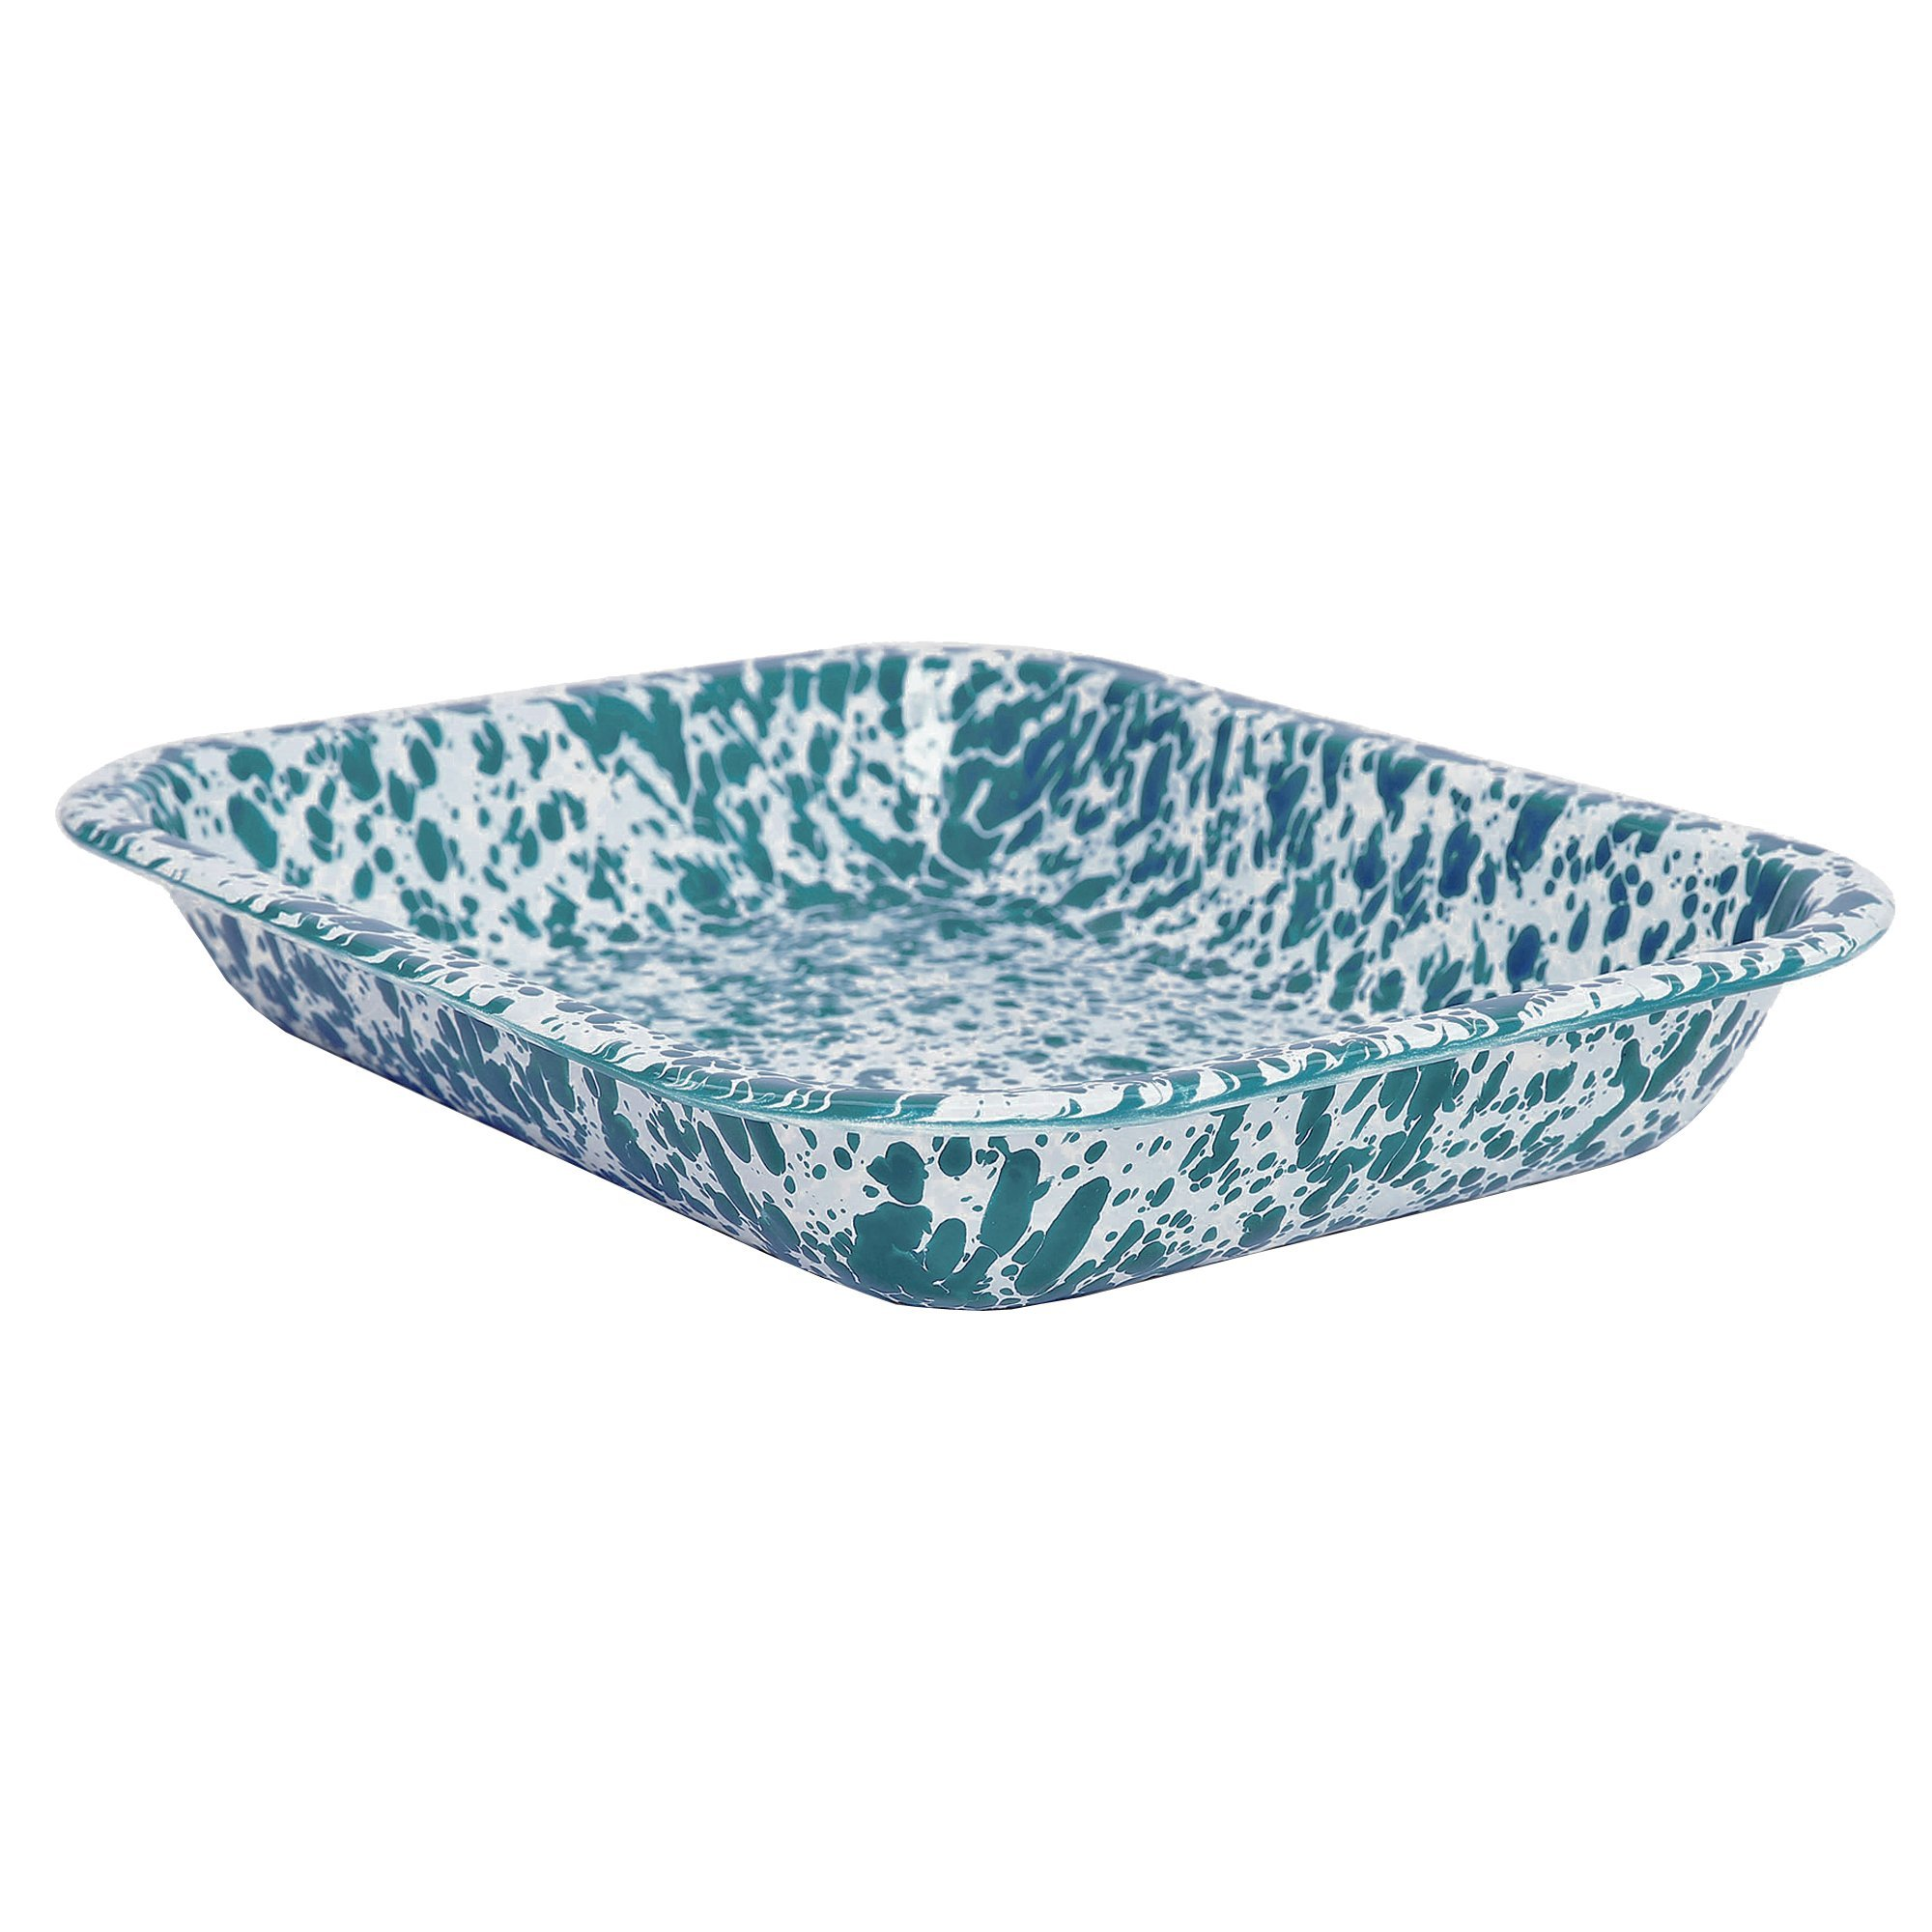 Enamelware Small Roasting Pan - Turquoise Marble